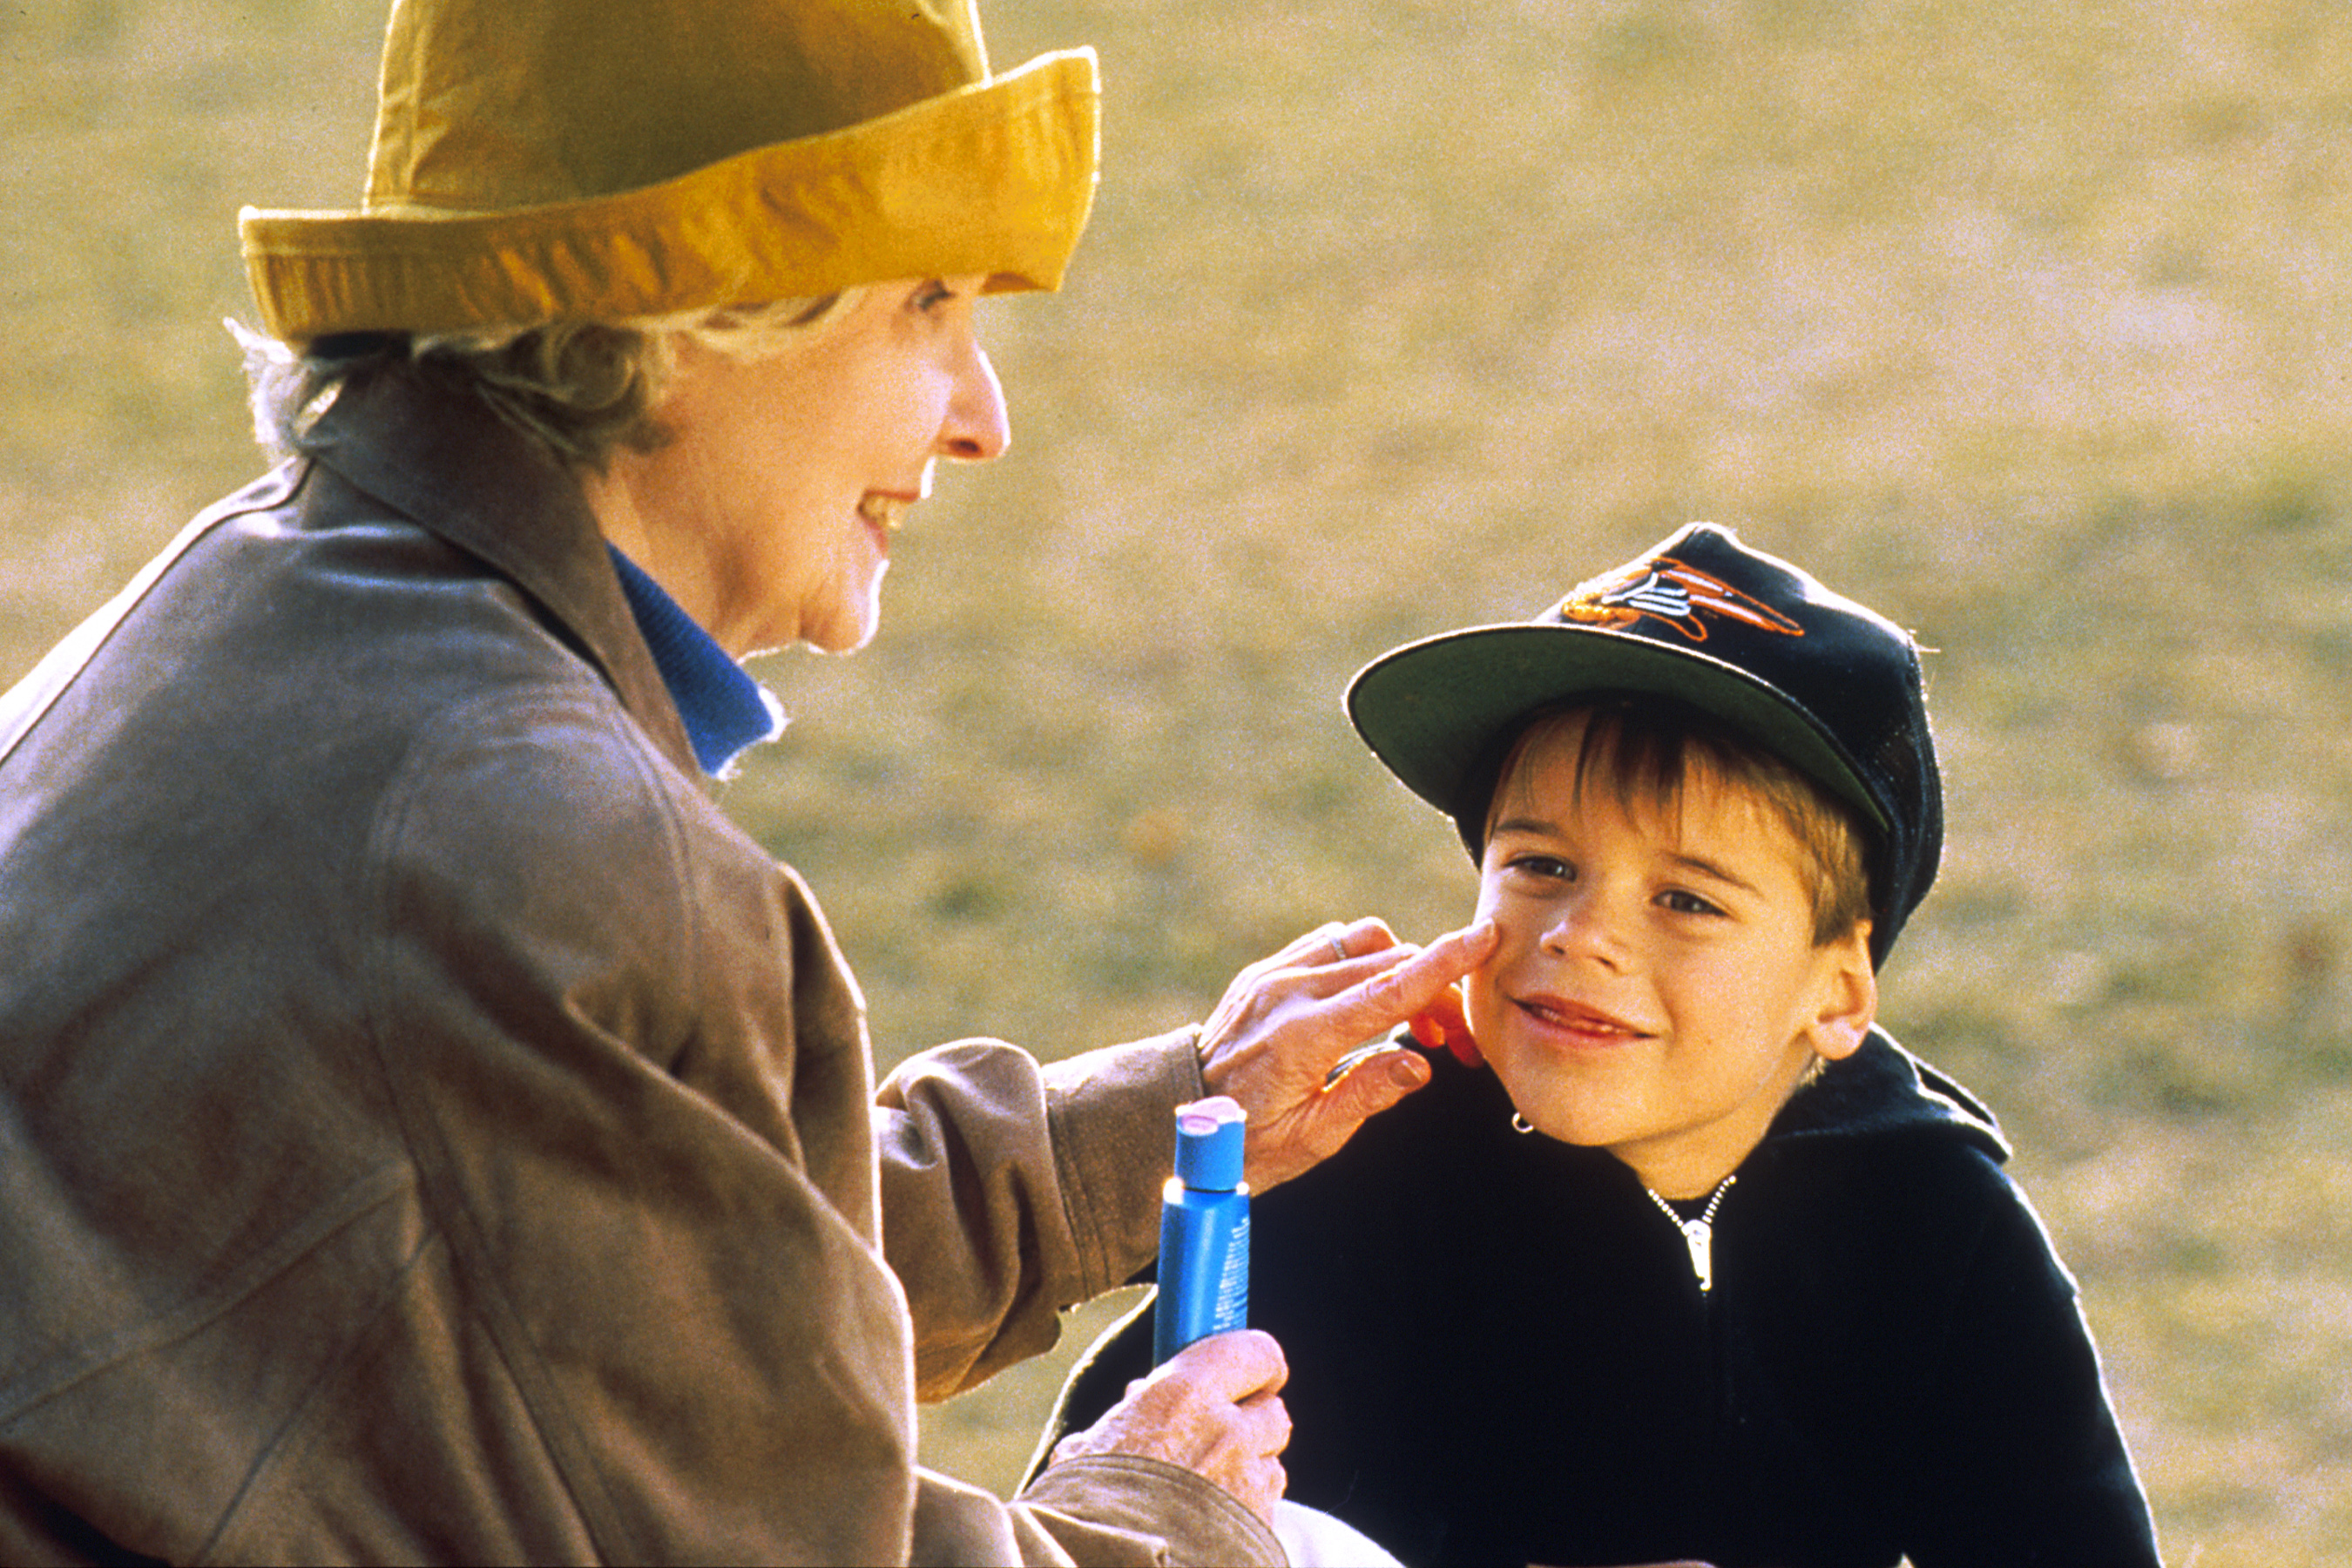 An older Caucasian women applying sunscreen to young Caucasian child.